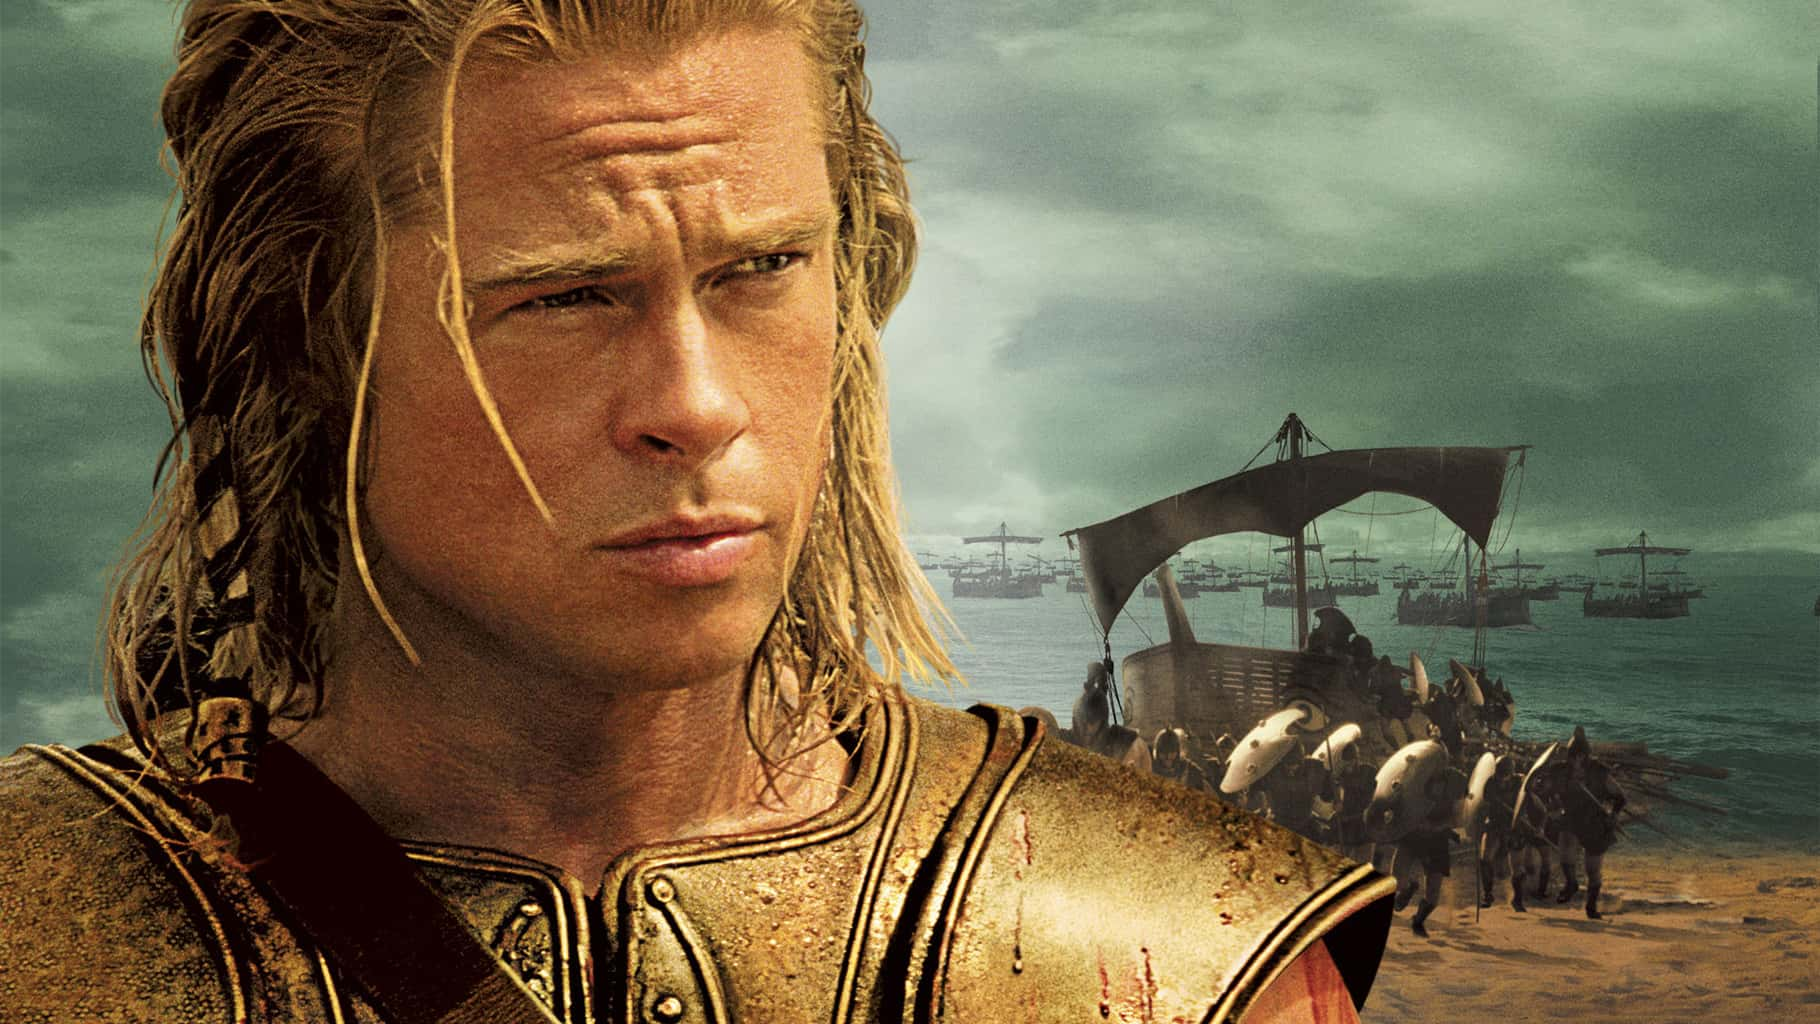 In Troy, Achilles delivers this line: